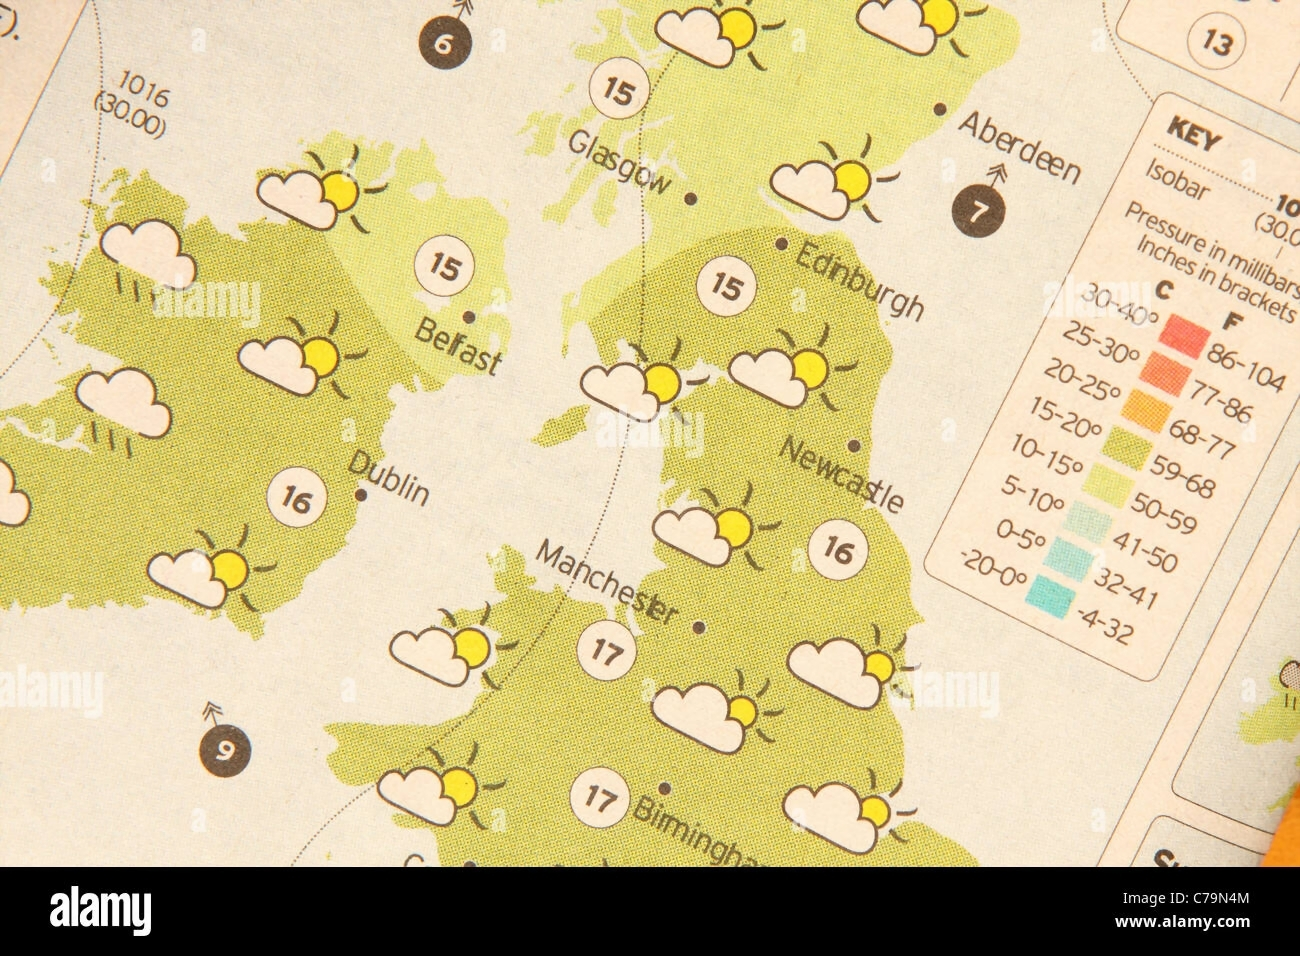 Weather Forecast Map Stock Photos   Weather Forecast Map Stock     Weather forecast map in a newspaper   Stock Image